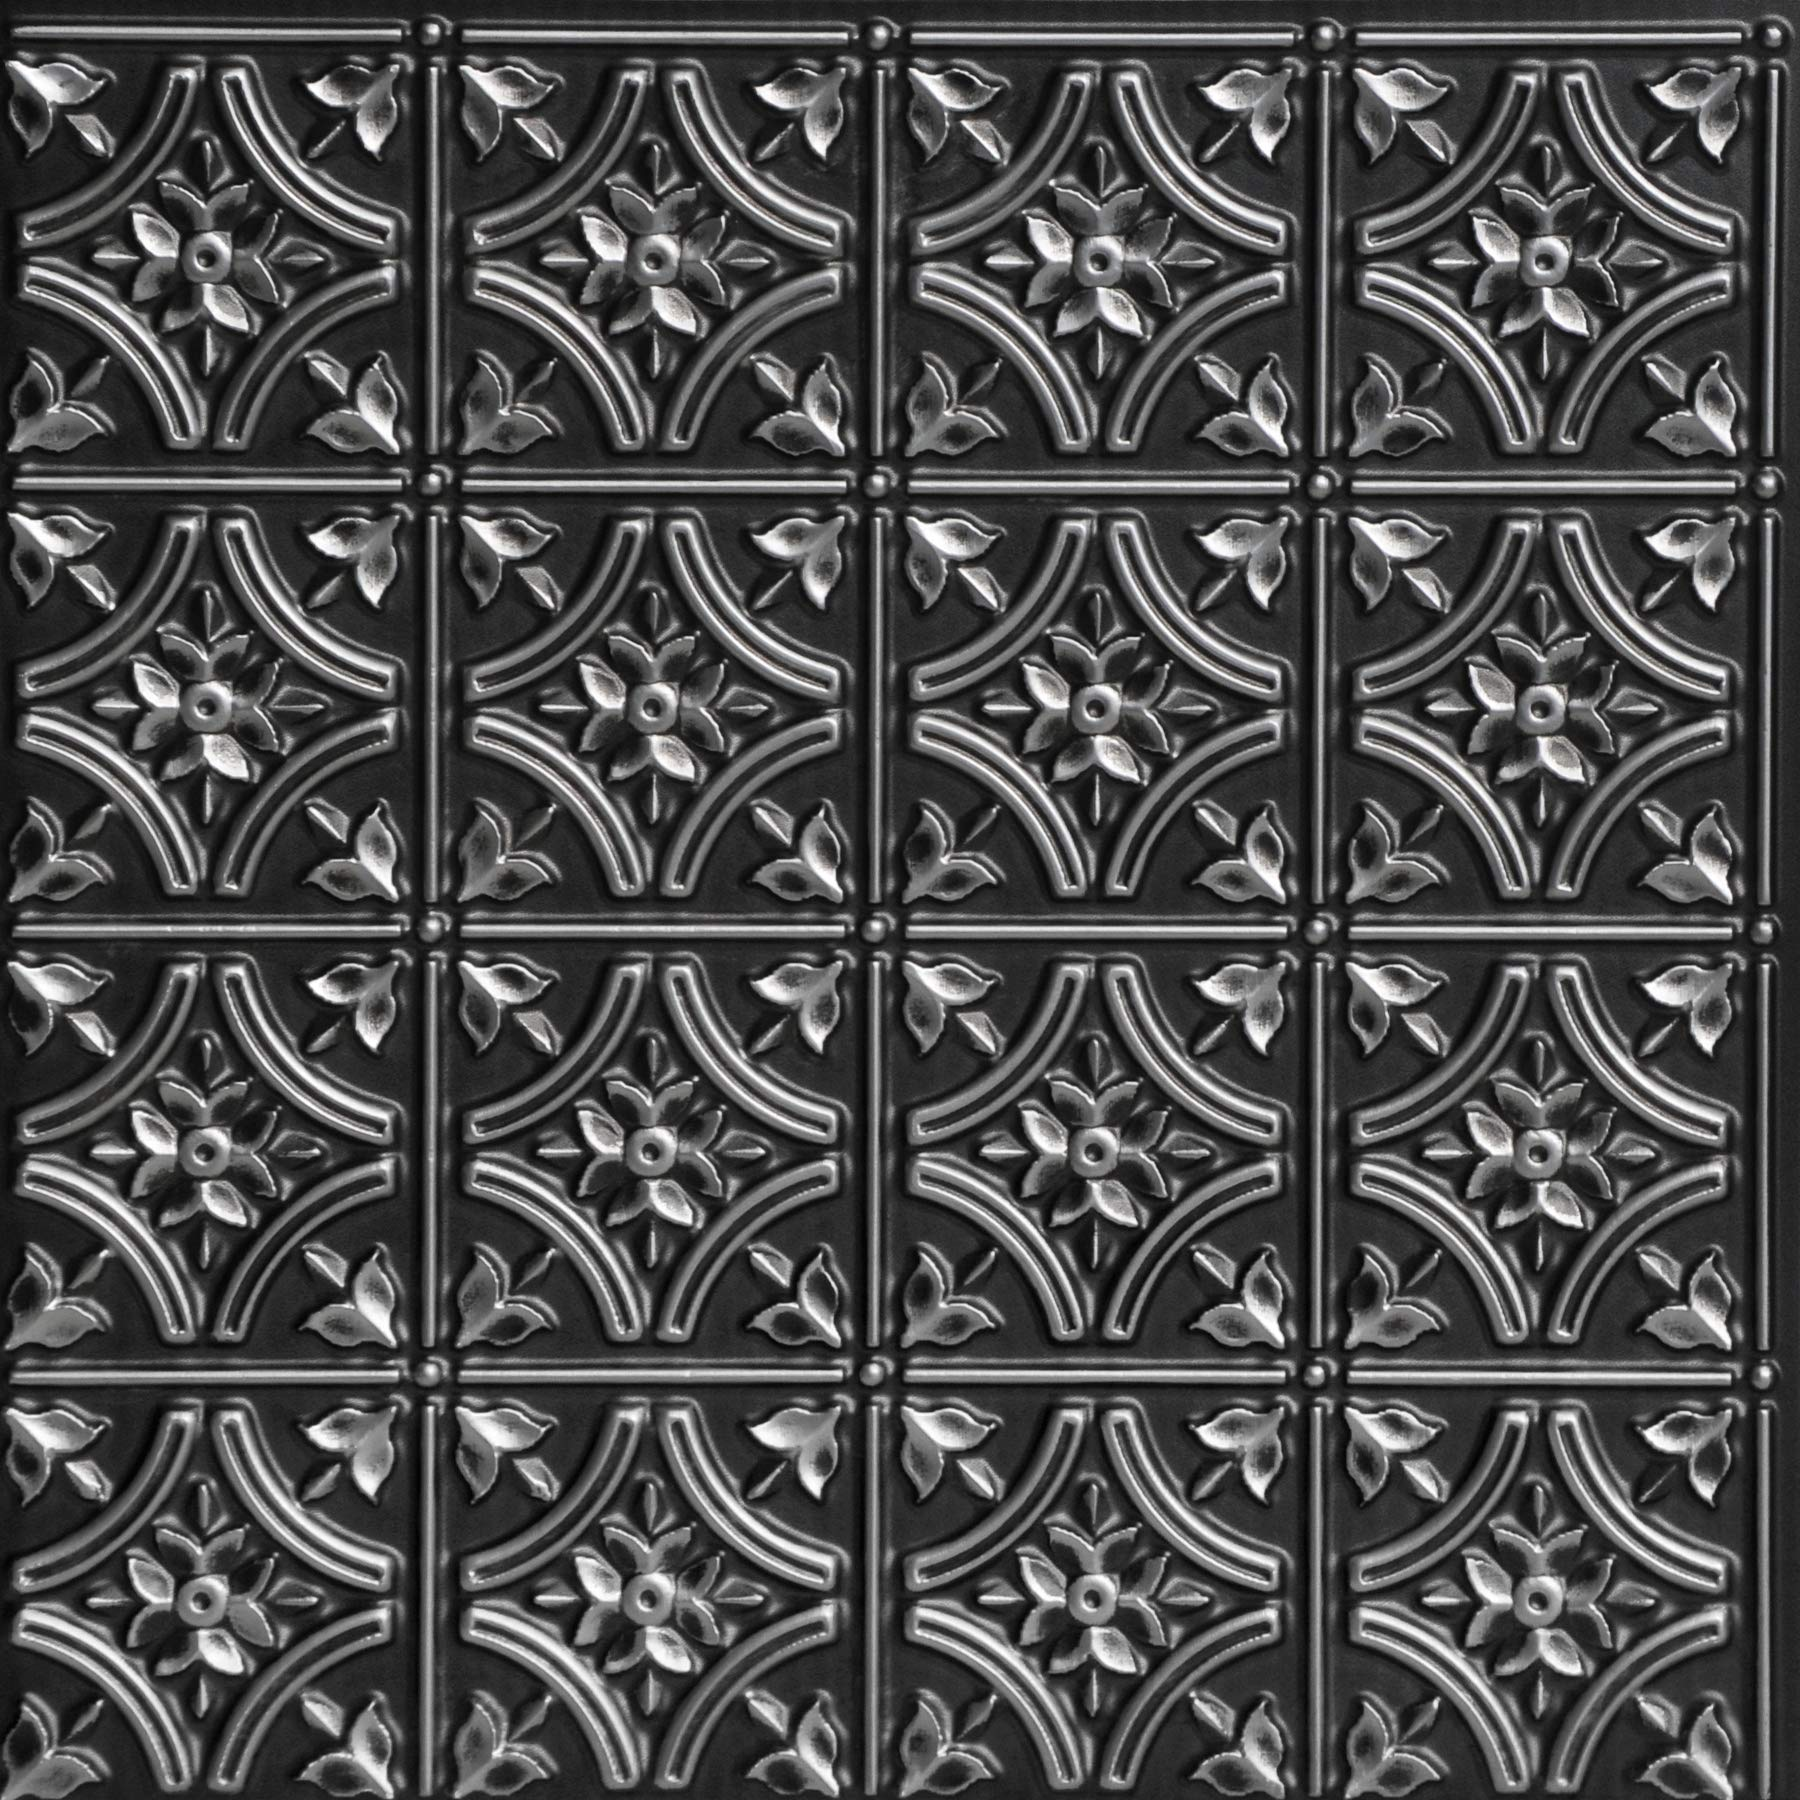 From Plain To Beautiful In Hours 150as-24x24-25 Gothic Reams Ceiling Tile Antique Silver 25